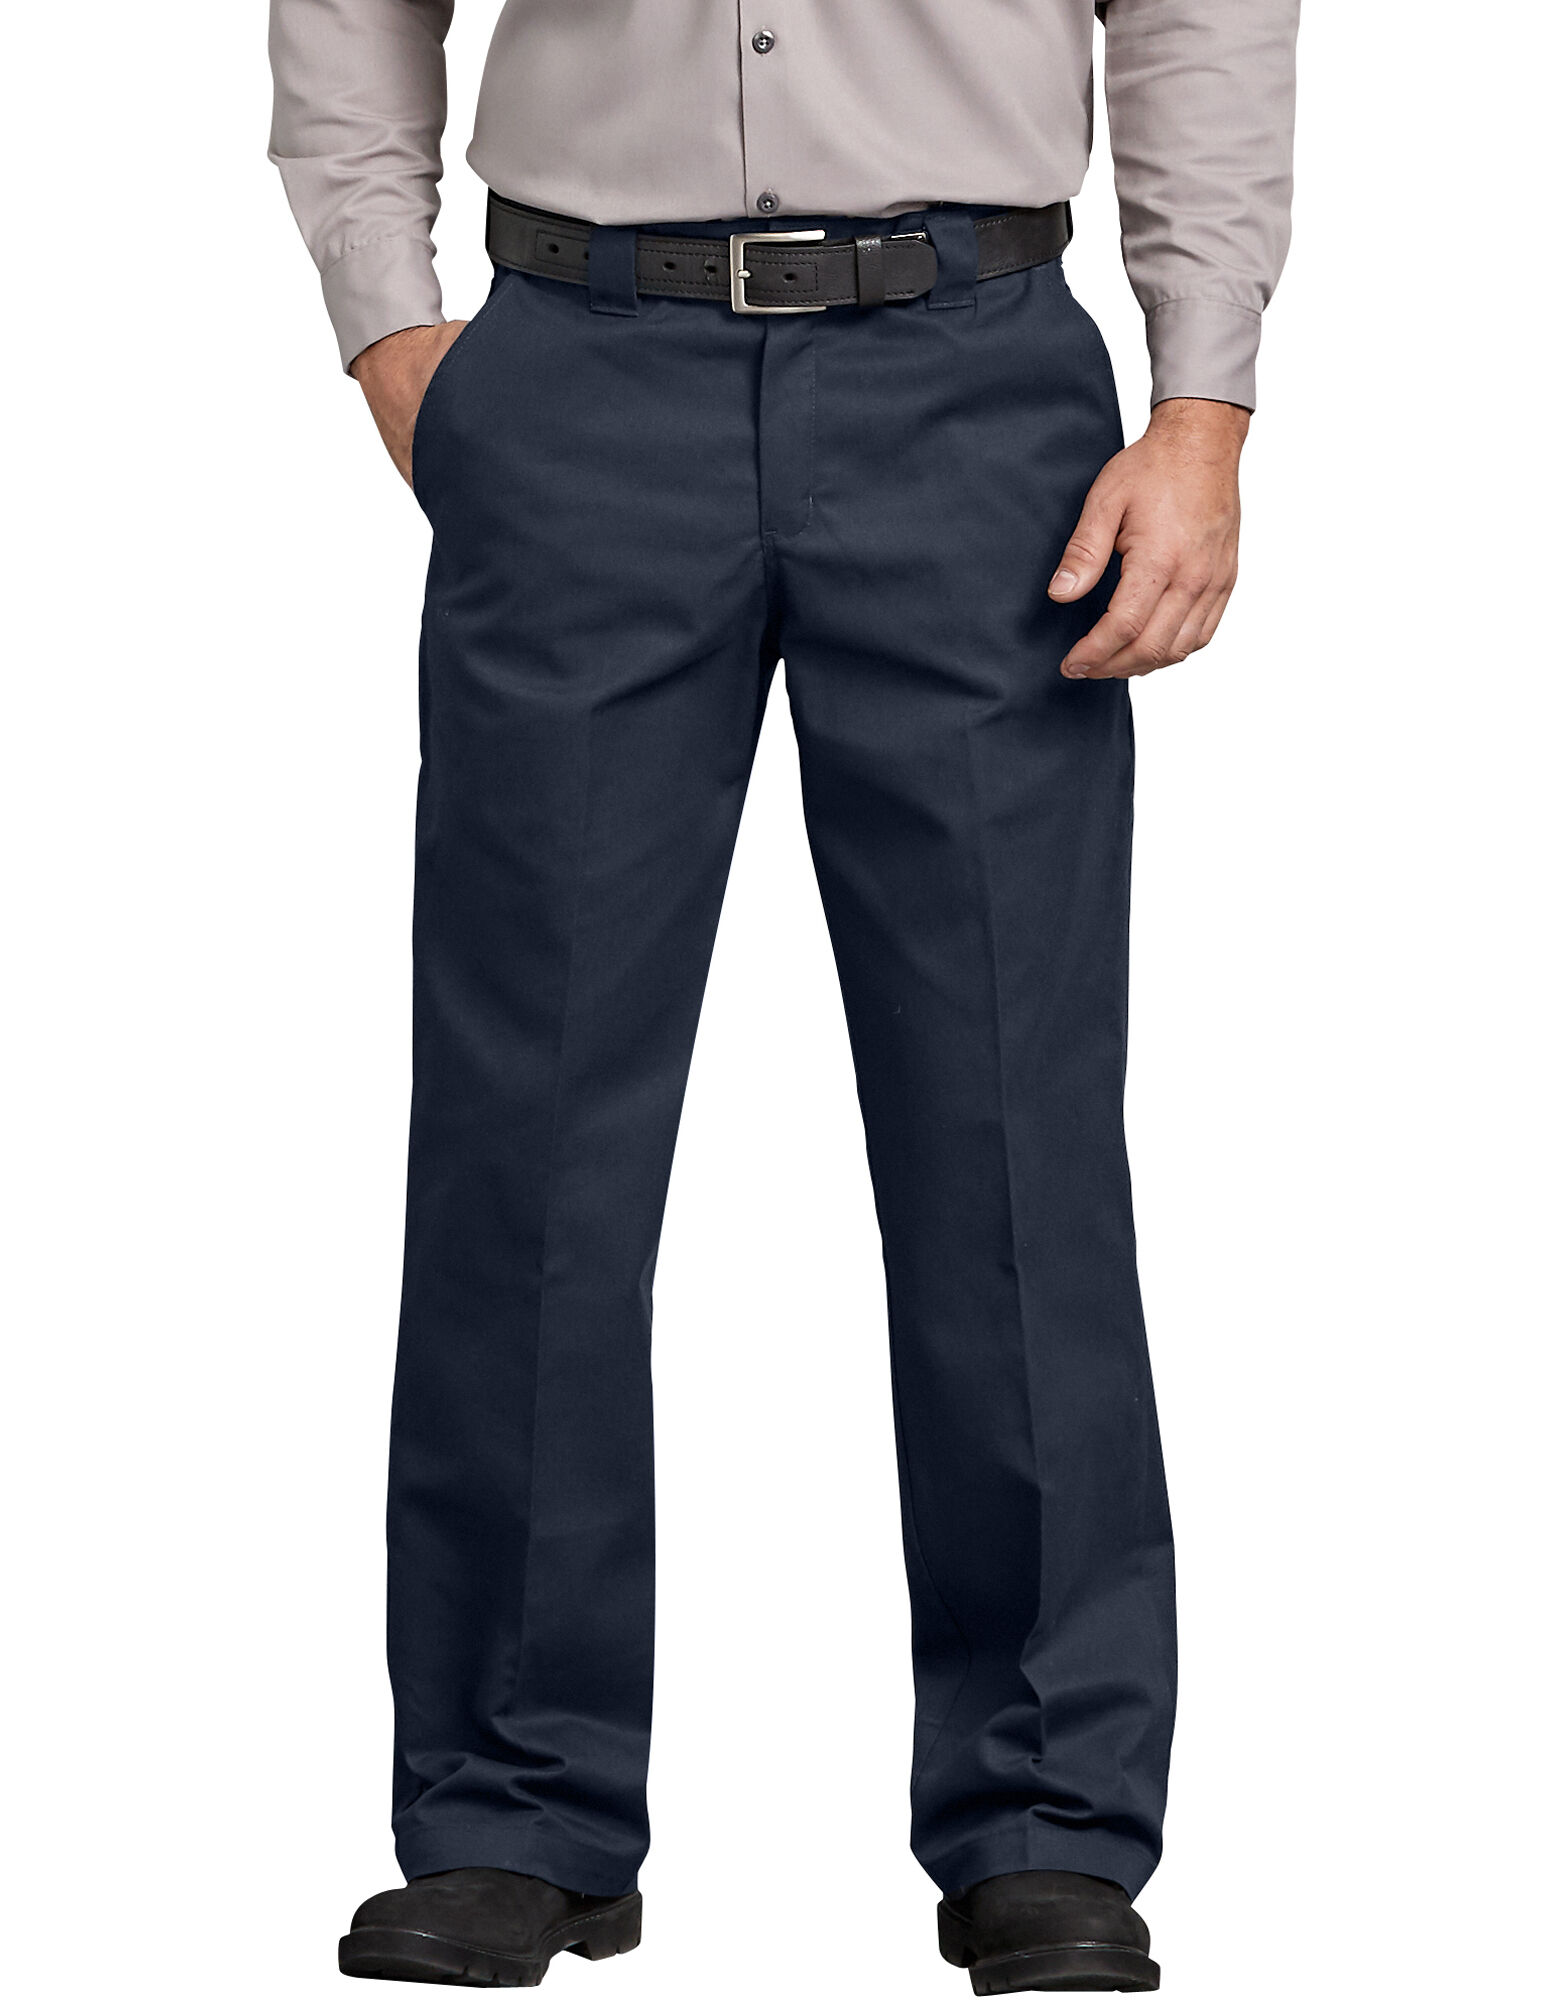 FLEX Relaxed Fit Straight Leg Twill Comfort Waist Pants-Dickies Canada